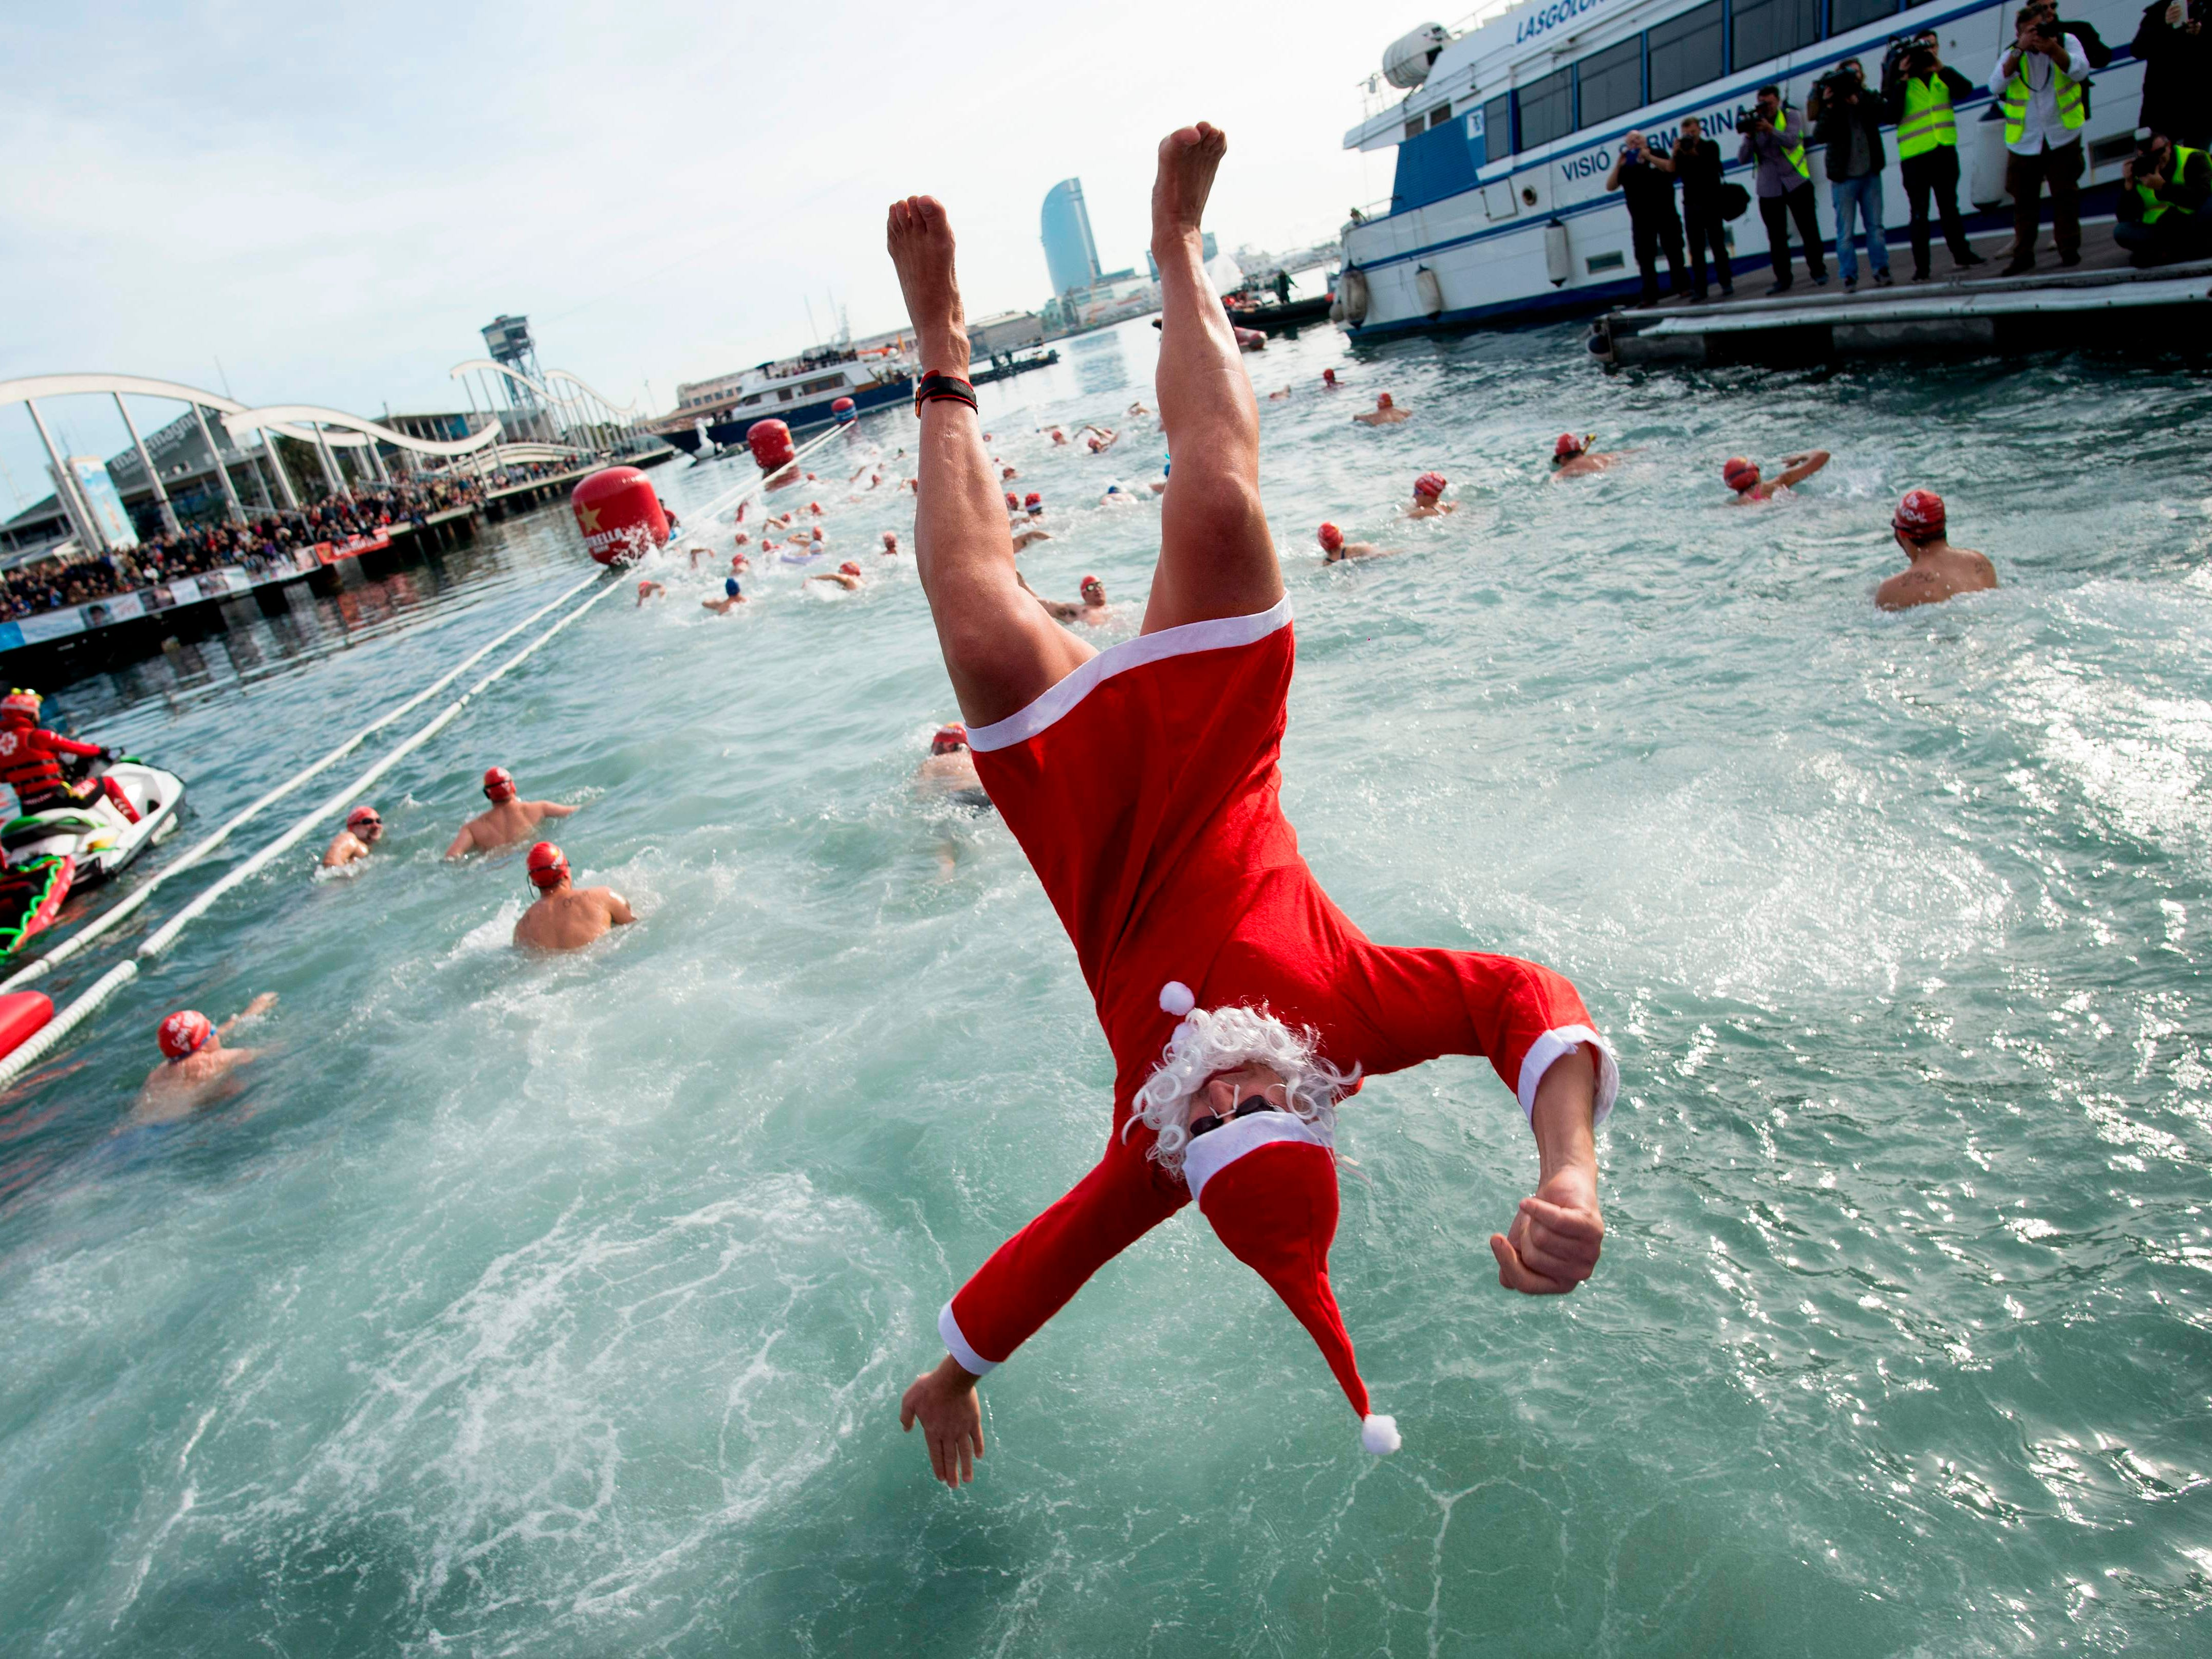 A participant in a Santa Claus costume jumps into the water during the 109th edition of the 'Copa Nadal' (Christmas Cup) swimming competition in Barcelona's Port Vell on Dec. 25, 2018.  The traditional 200-meter Christmas swimming race gathered more than 300 participants on Barcelona's old harbour.